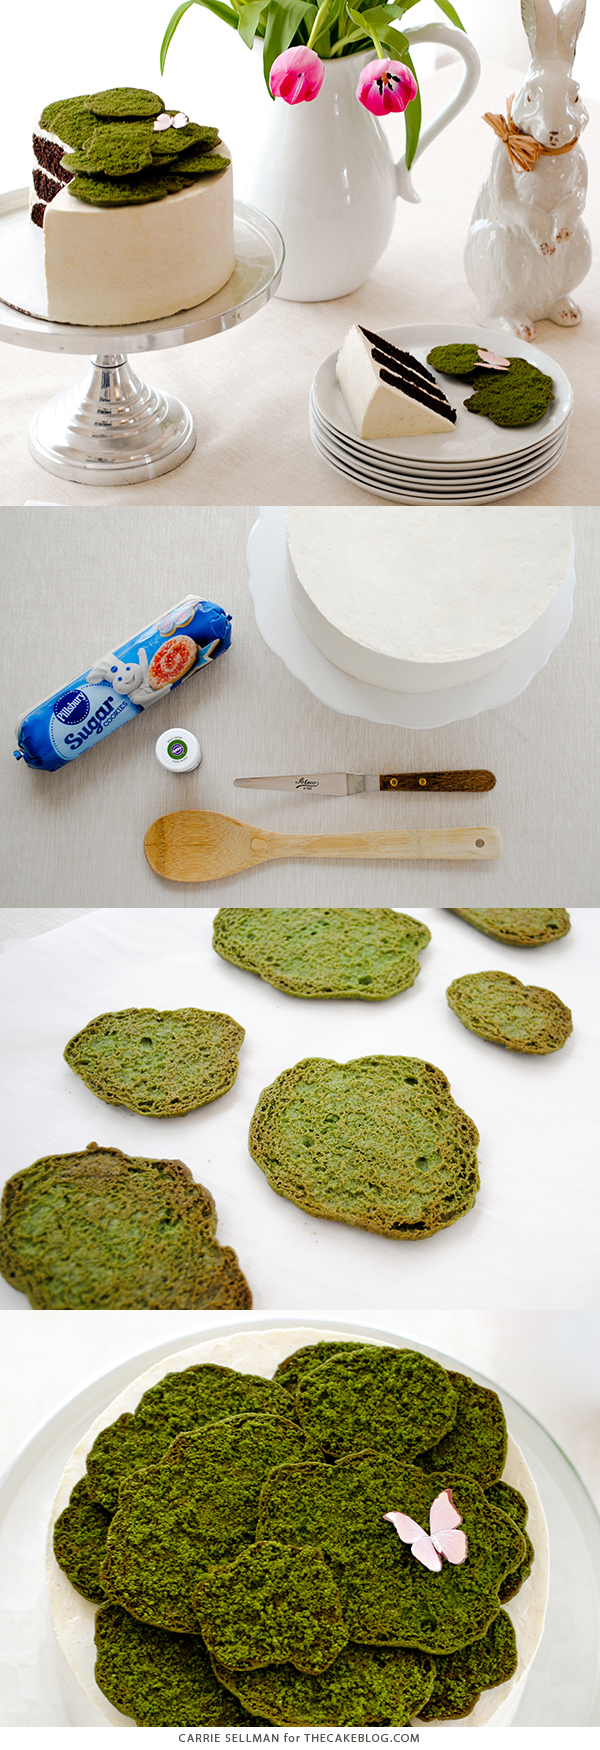 Cookie Moss Cake - how to make edible moss from cookie dough. Top spring and Easter cakes, woodland cakes or a birthday cake for your favorite gardener! | by Carrie Sellman for TheCakeBlog.com